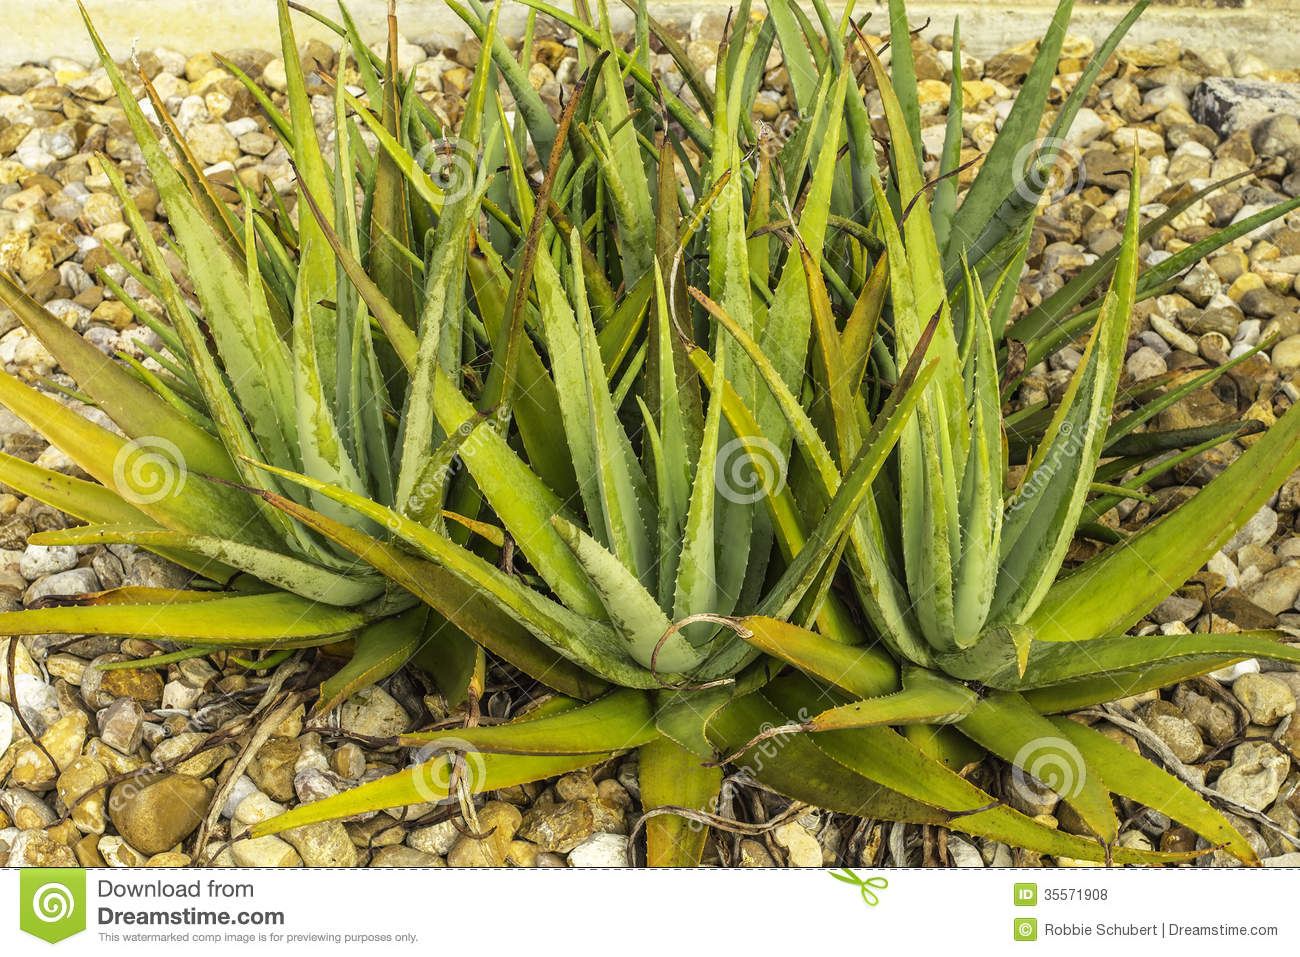 Aloe cactus plant royalty free stock photos image 35571908 - What is cactus plant good for ...